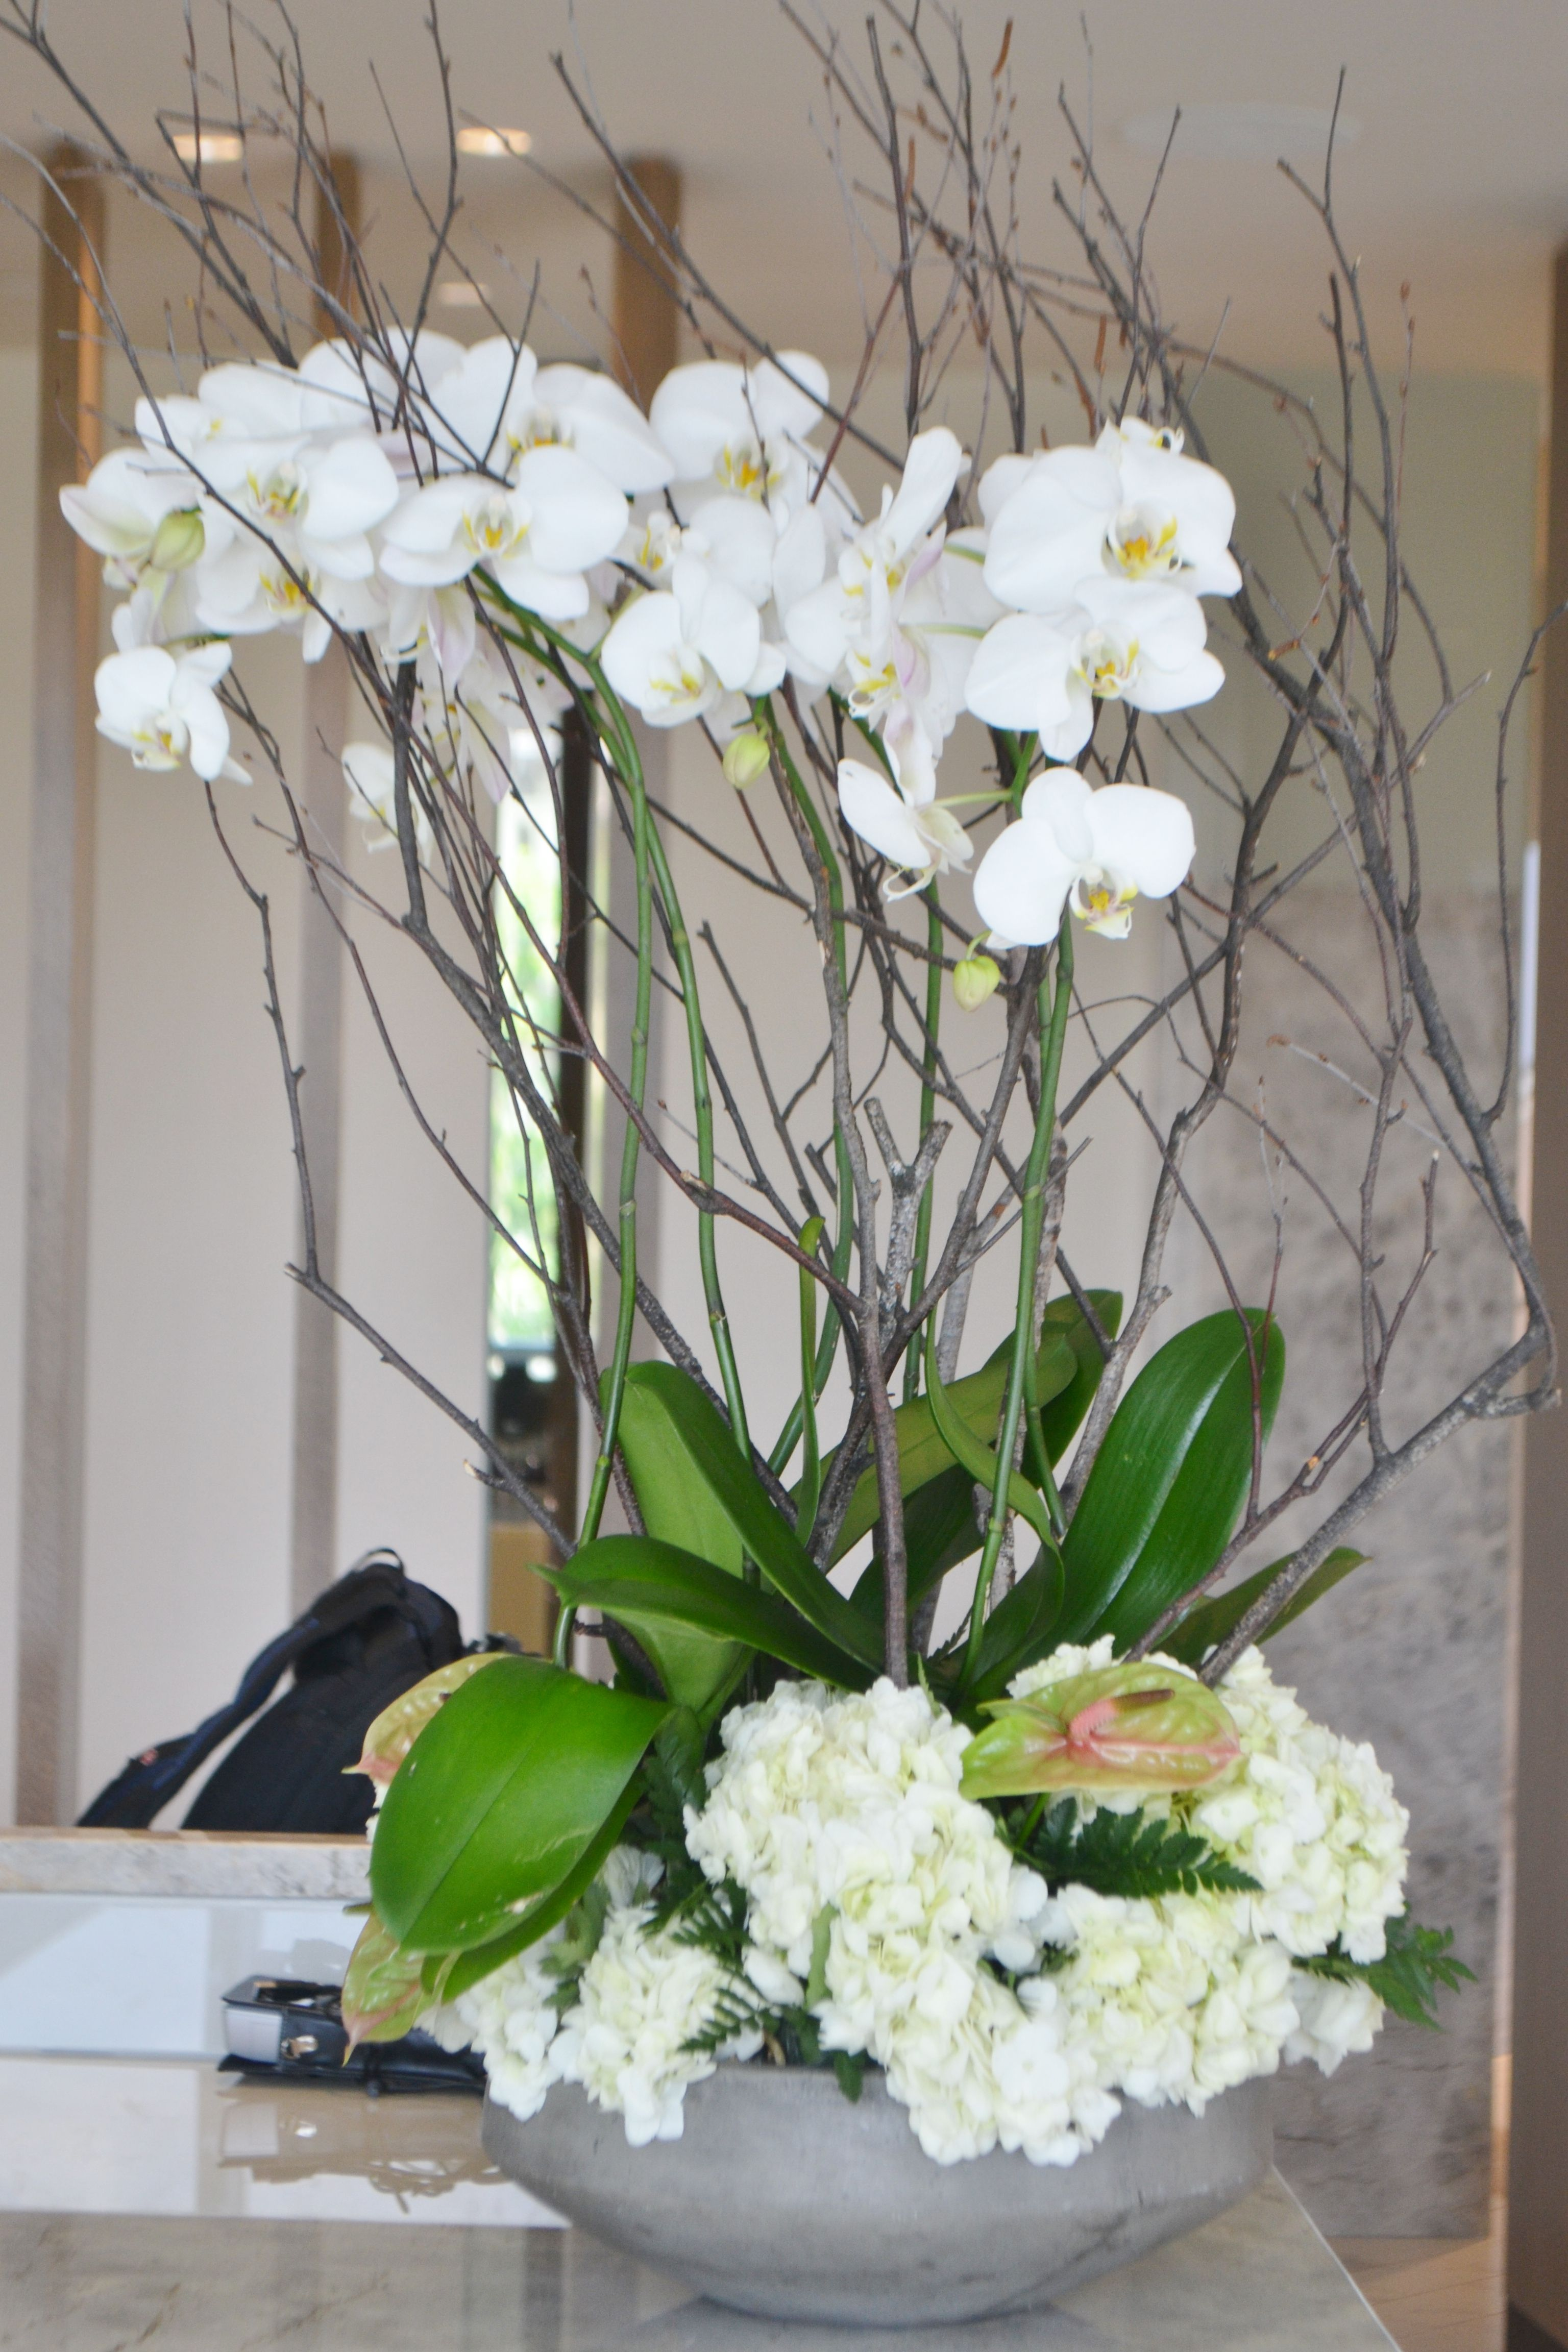 Phalaenopsis Orchid Plants Design For Lobby Flower Delivery Fresh Flower Delivery Plant Design